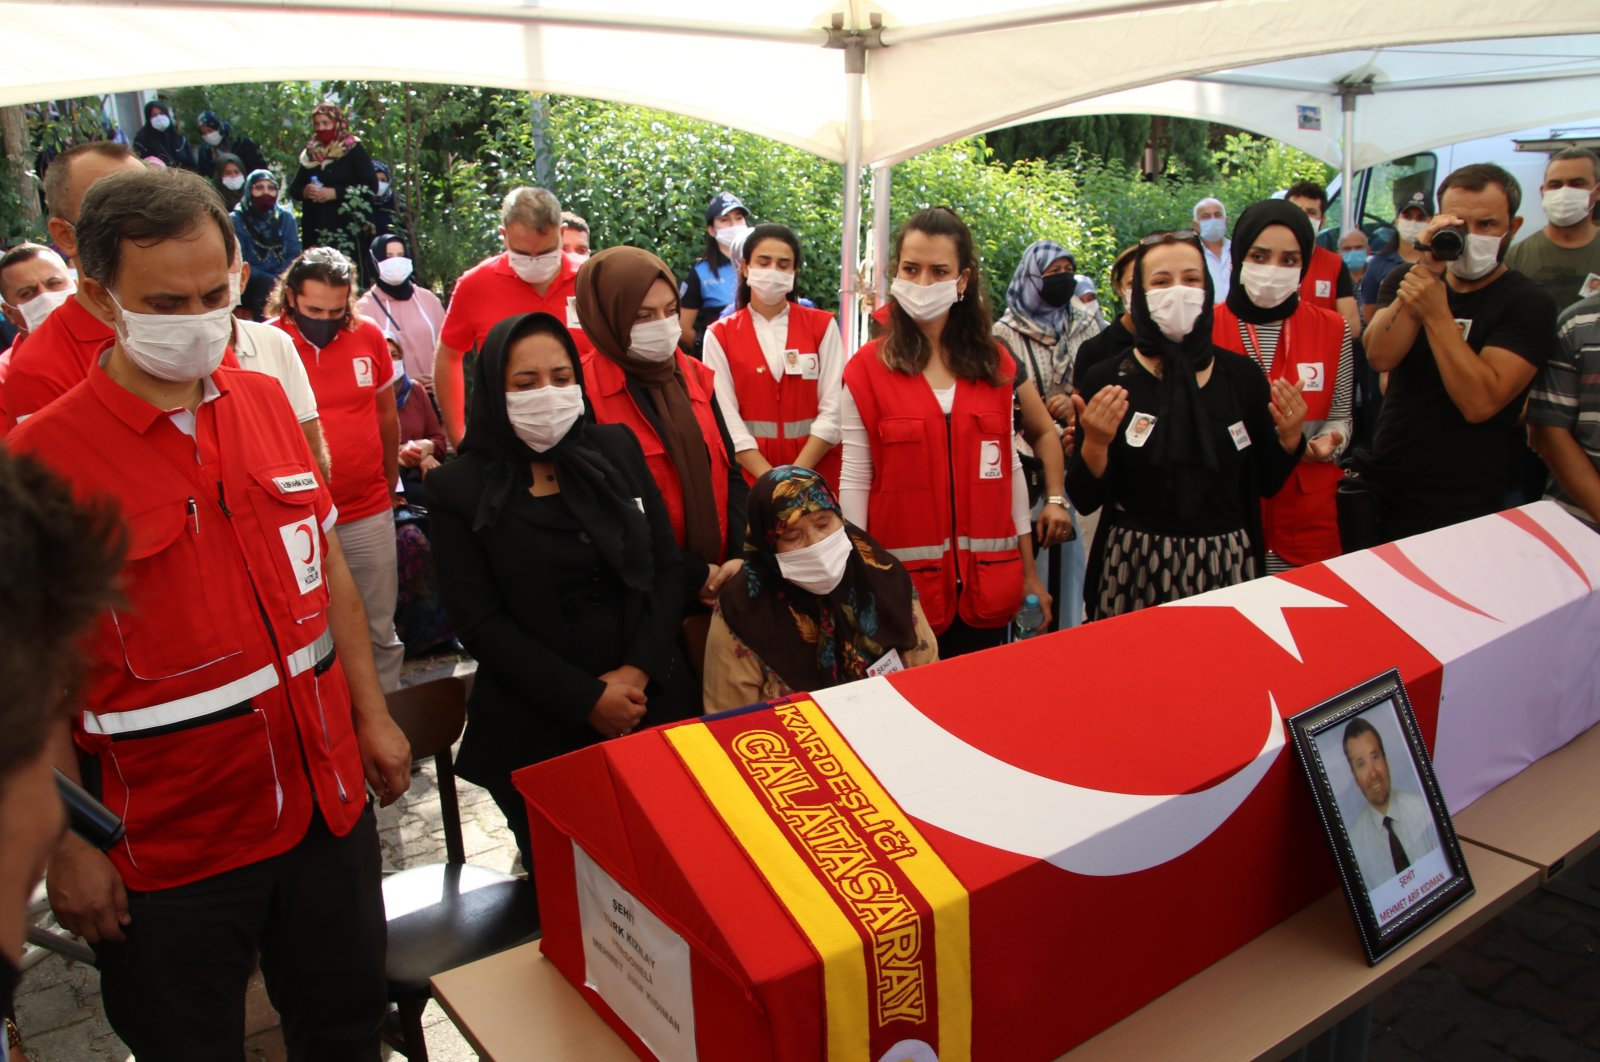 The funeral of the Turkish Red Crescent worker Mehmet Arif Kıdıman took place in his hometown Düzce with the participation of his colleagues, northwestern Turkey, Sept. 15, 2020. (DHA)